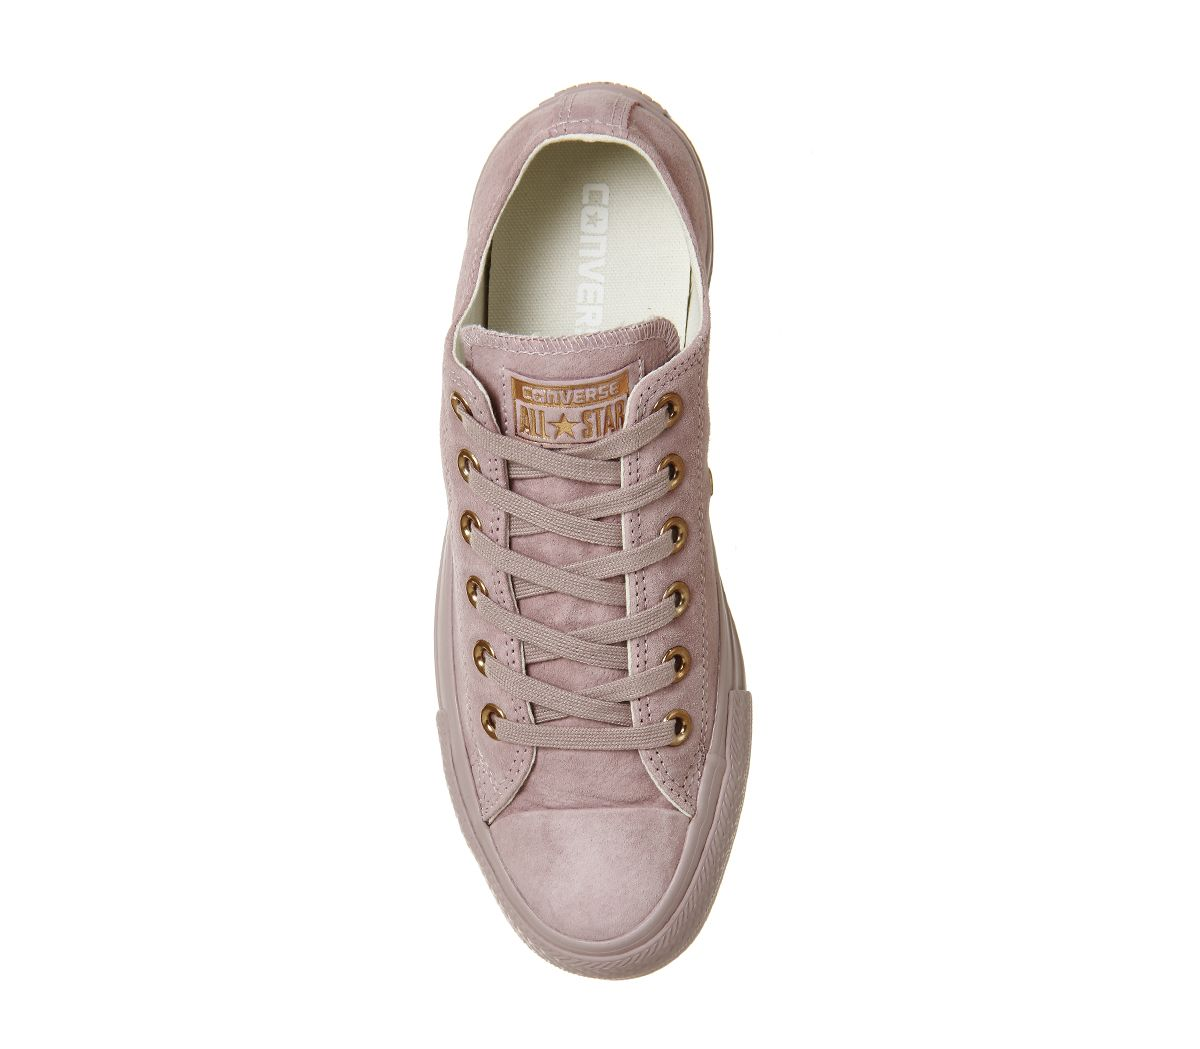 Converse All Star Low Leather Burnished Lilac Rose Gold Exclusive - Unisex  Sports 0812e21a7